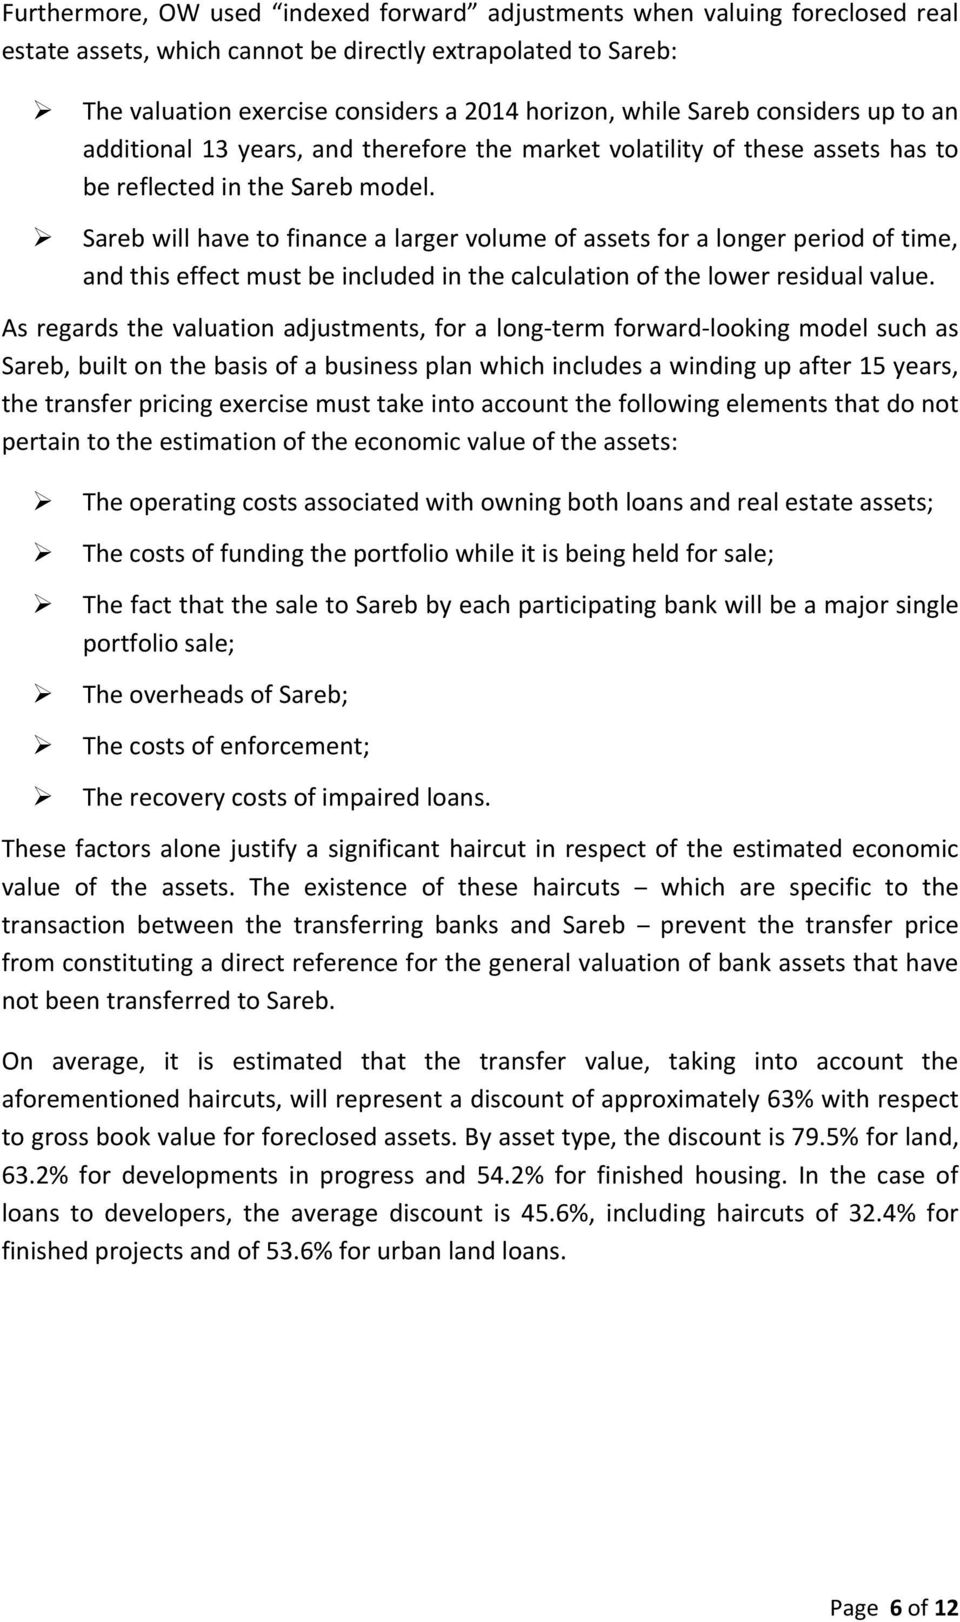 Sareb will have to finance a larger volume of assets for a longer period of time, and this effect must be included in the calculation of the lower residual value.